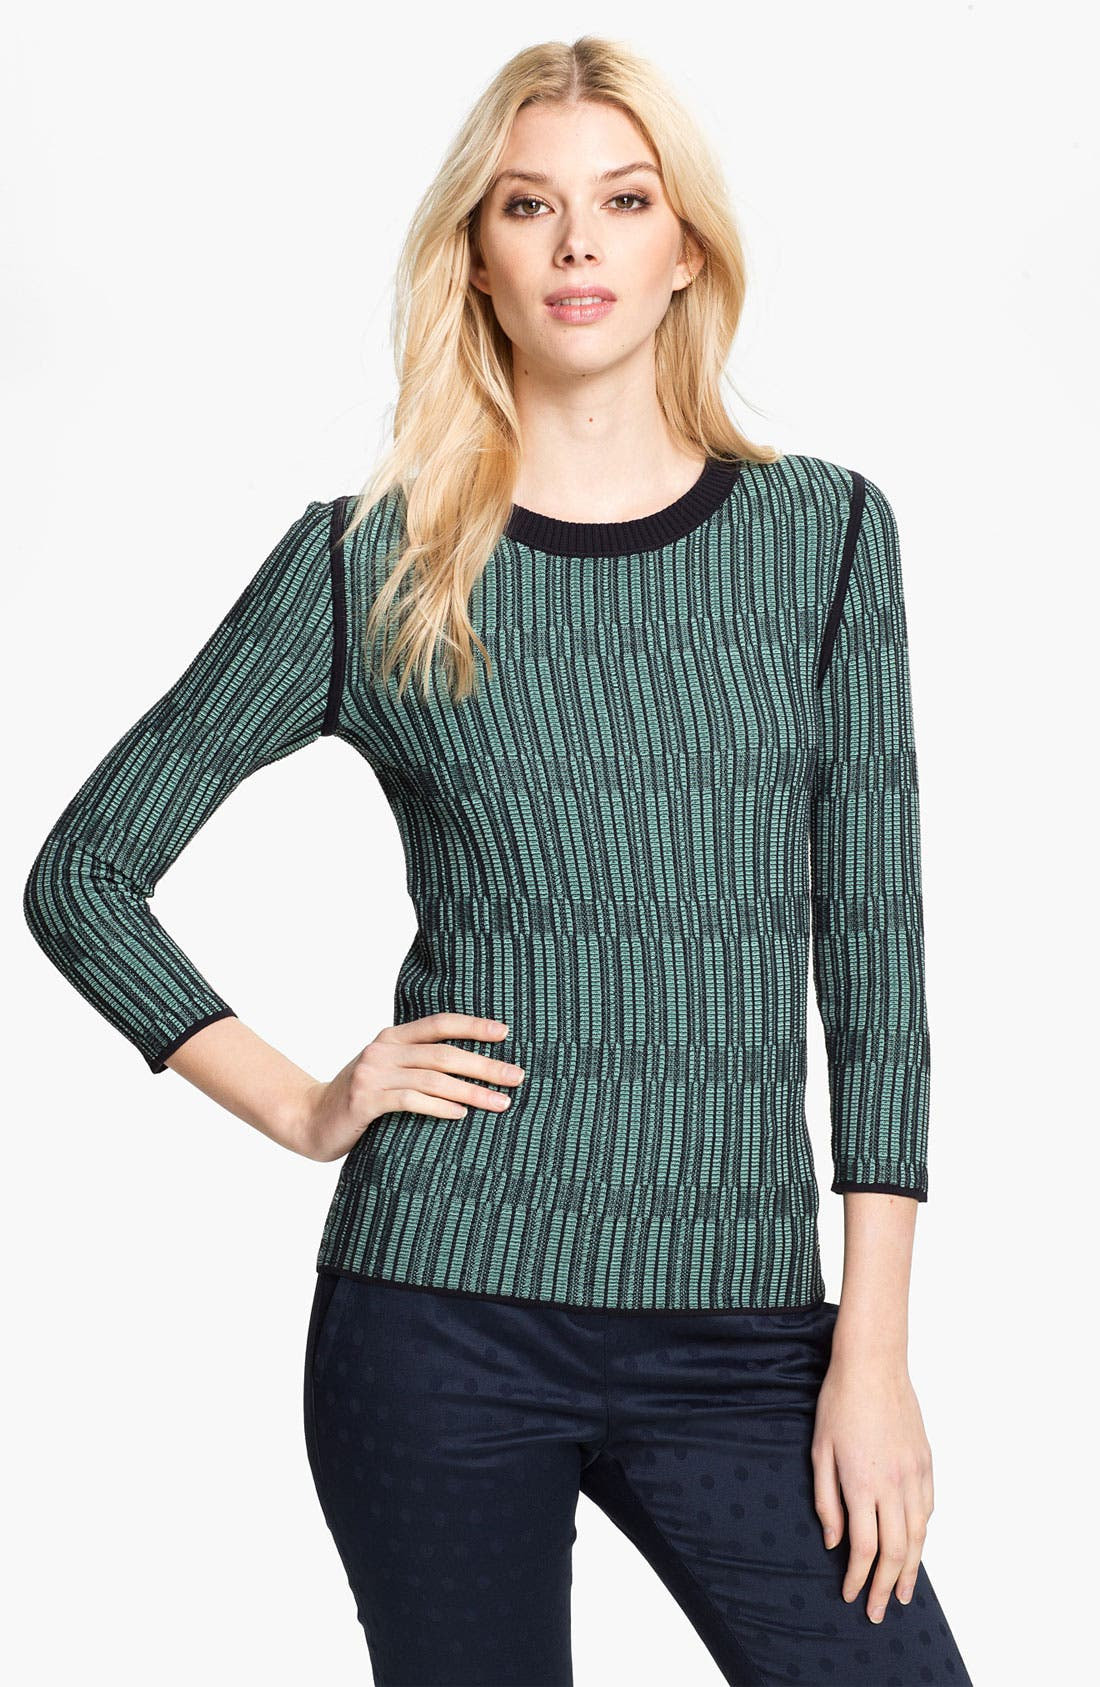 Main Image - Tory Burch 'Arielle' Sweater